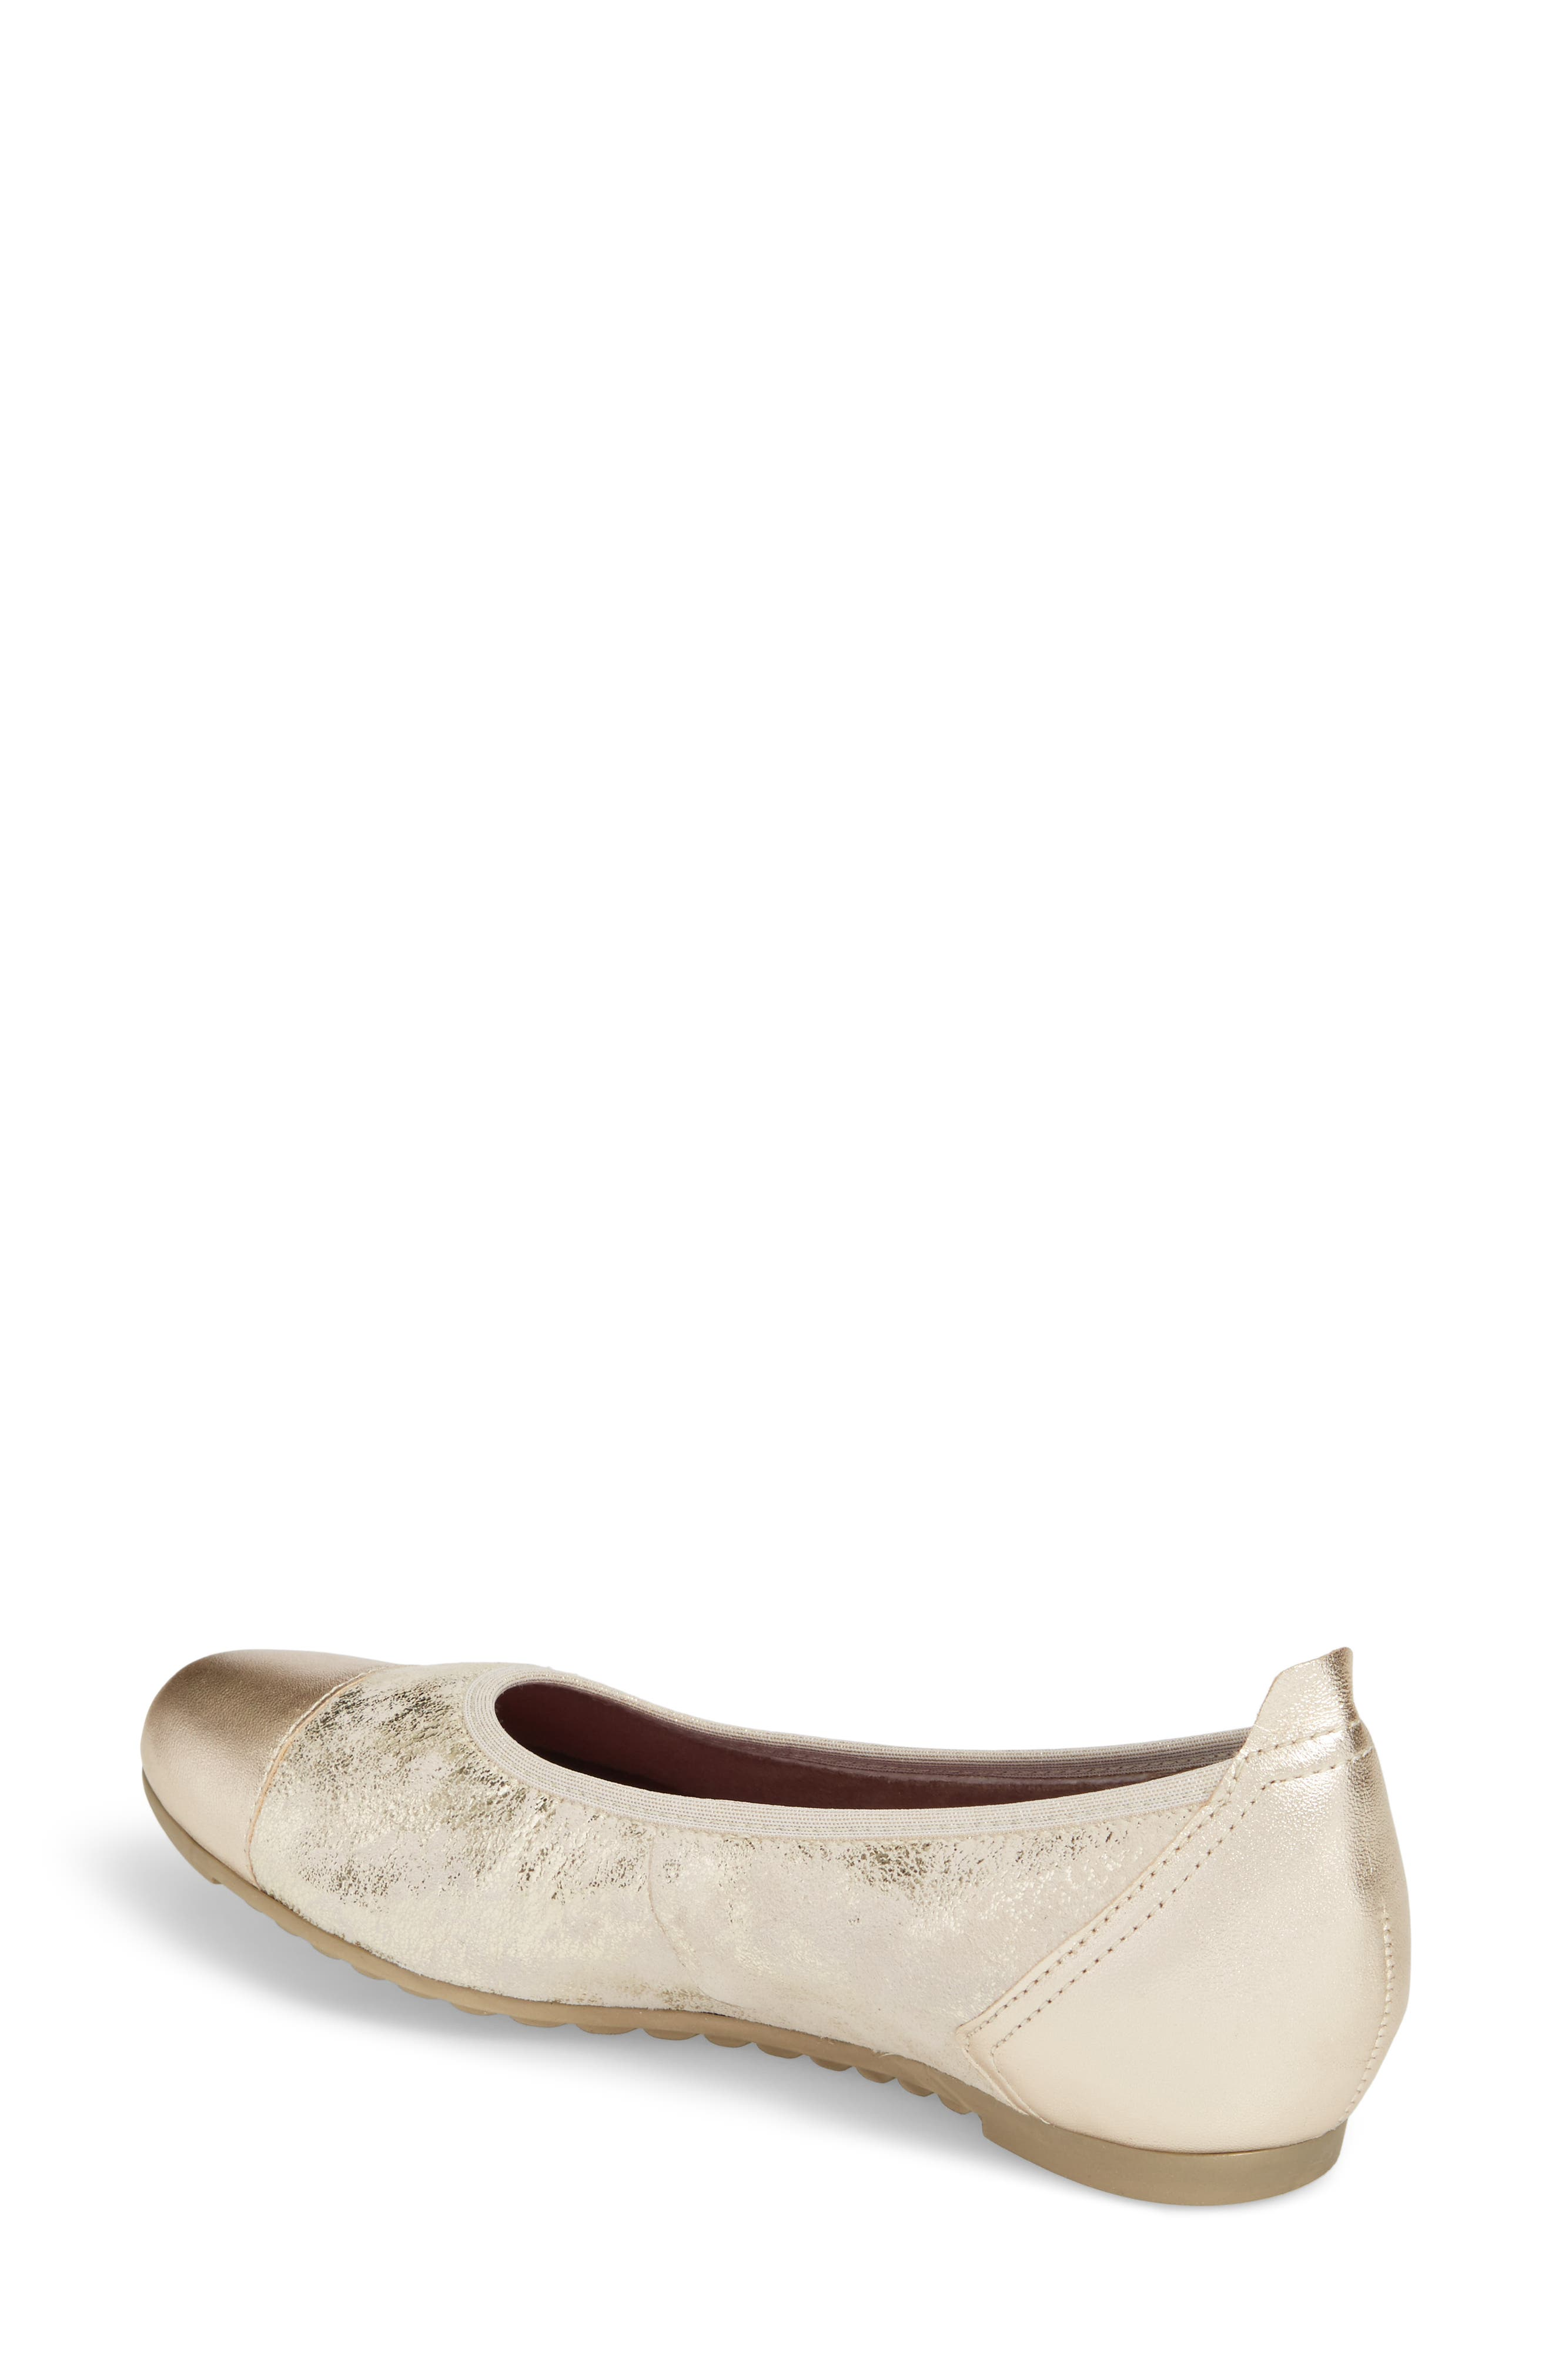 MUNRO, Henlee Cap Toe Flat, Alternate thumbnail 2, color, PLATINUM SHIMMER LEATHER